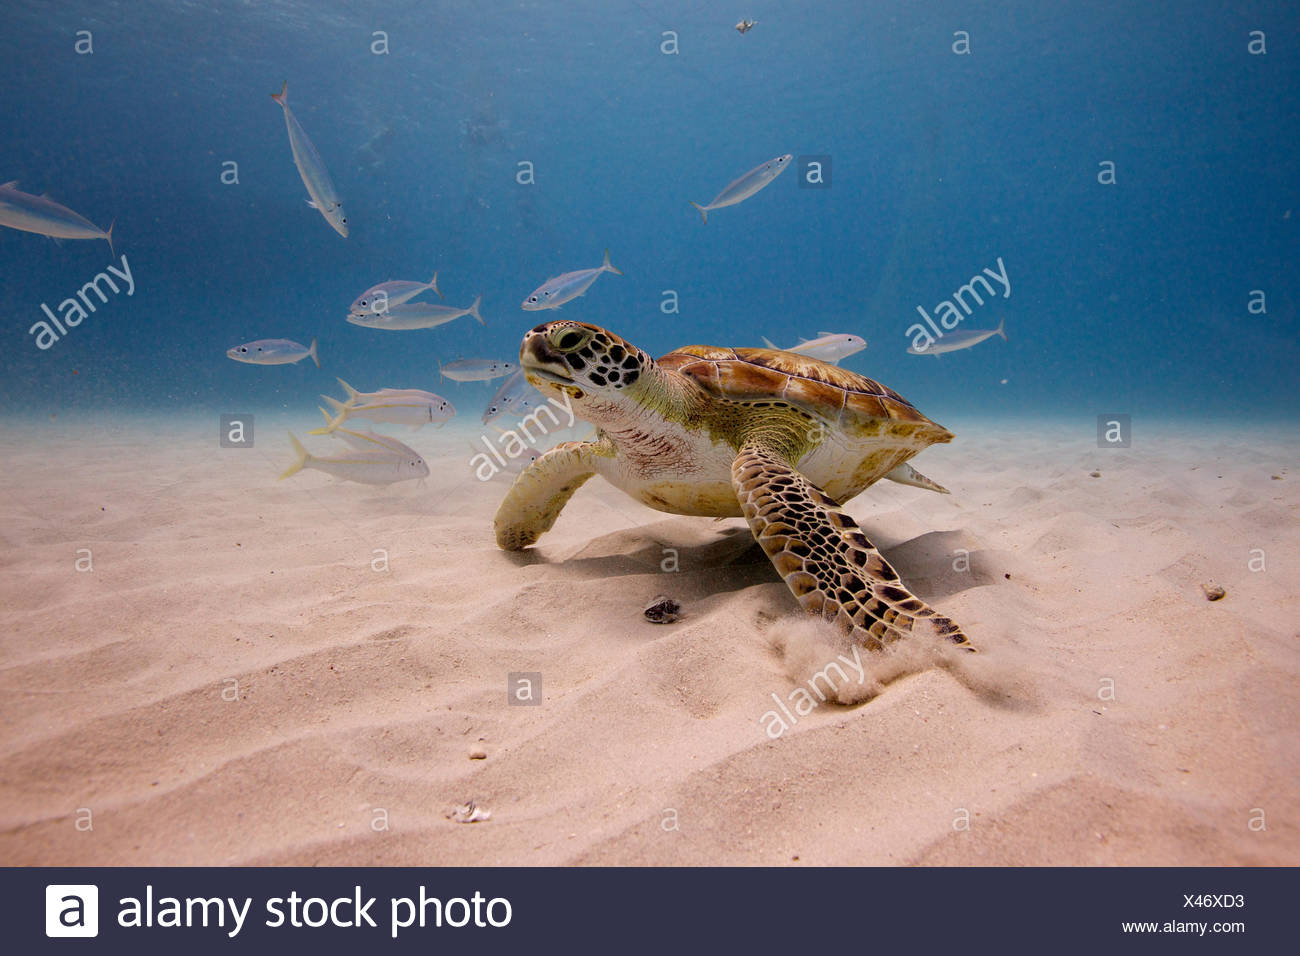 A turtle in waters off Barbados. - Stock Image